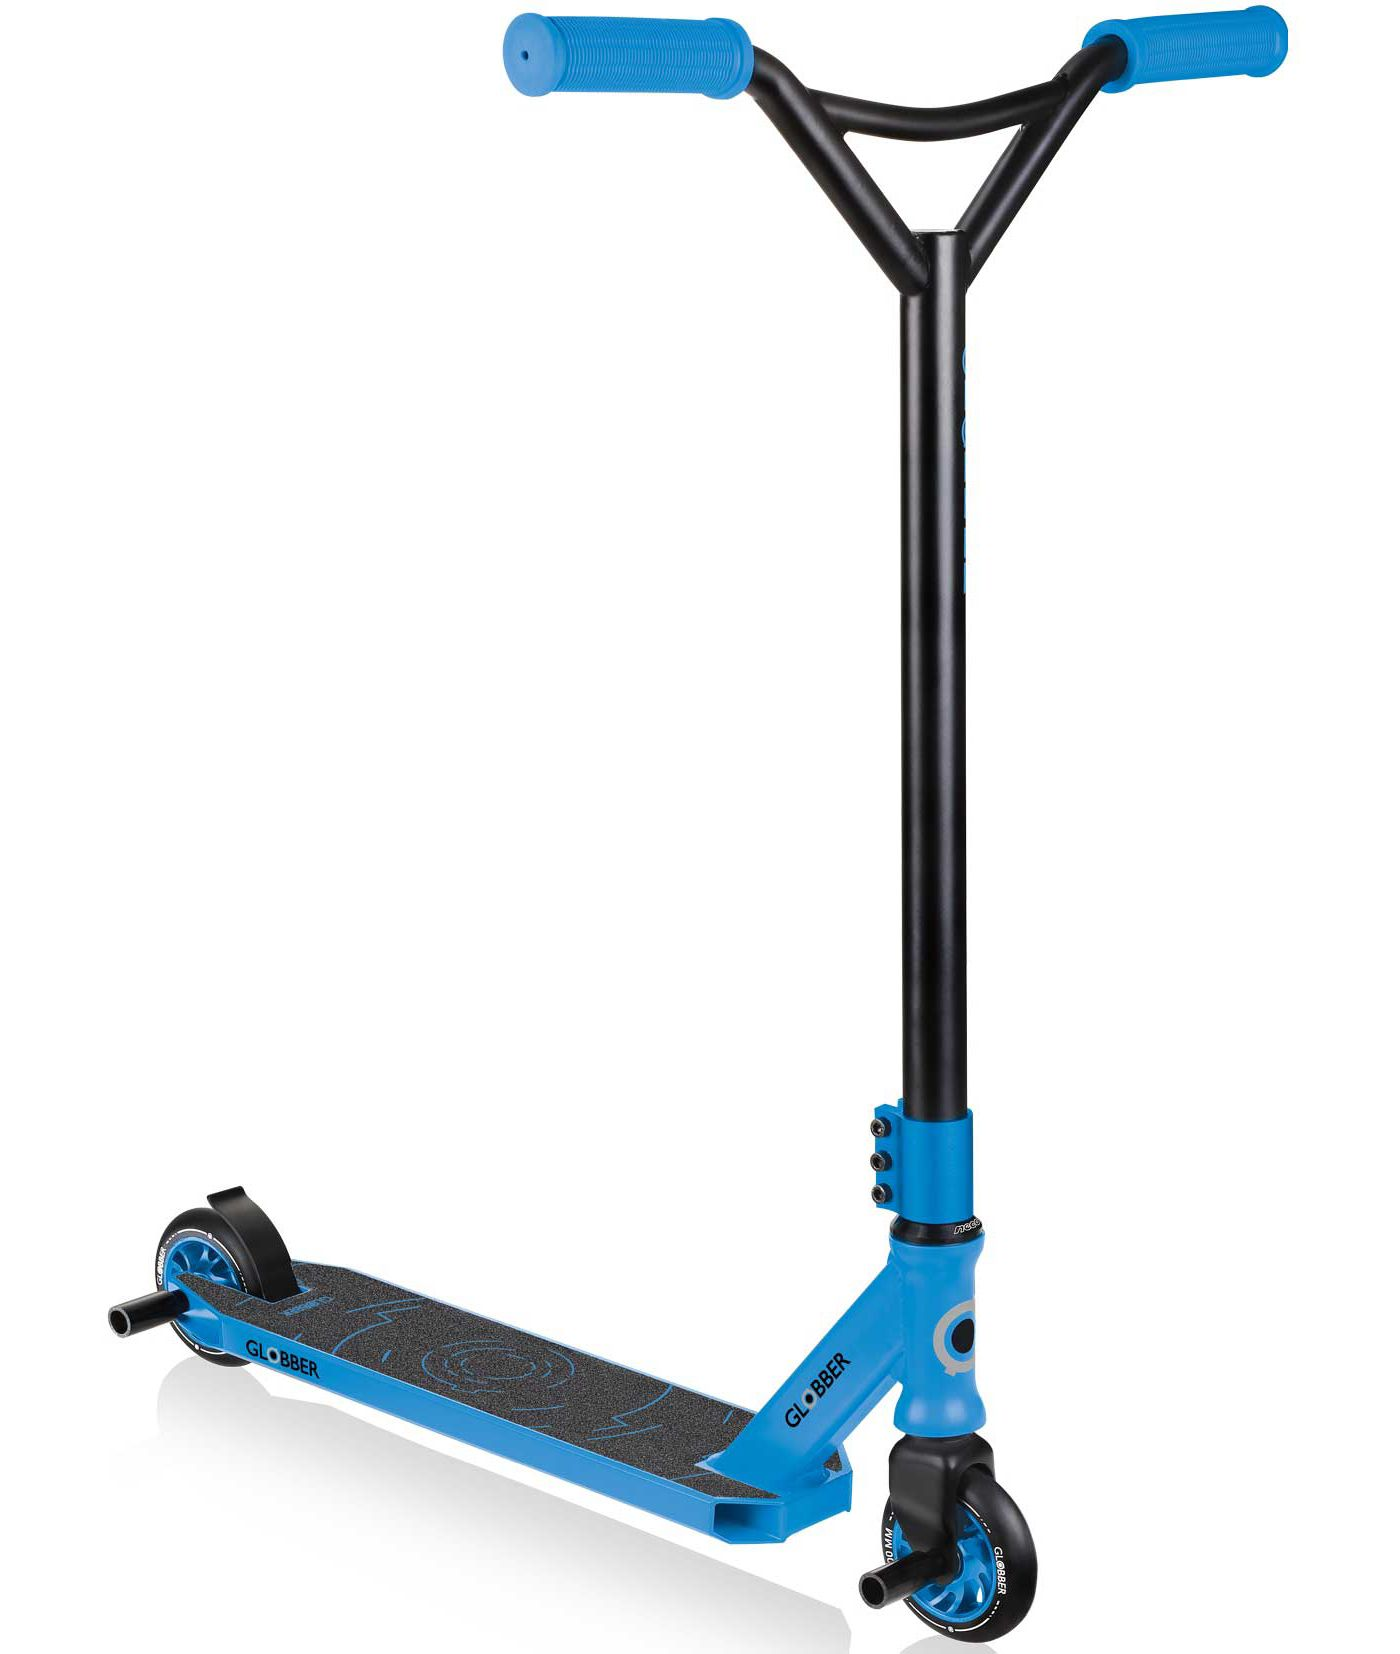 Globber GS 540 Stunt Scooter